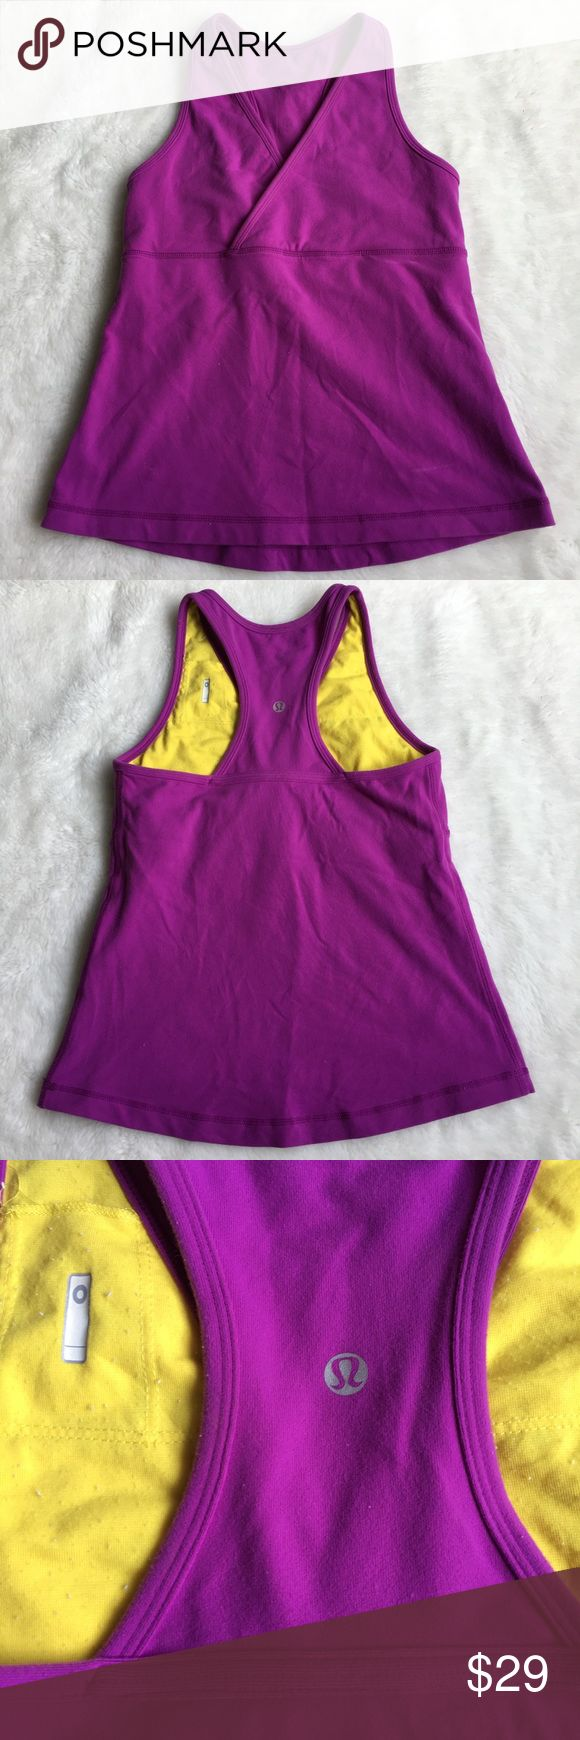 "Lululemon Magenta Top size 6 Preowned authentic Lululemon Magenta Top size 6. No size tag inside. Armpit to armpit is 13.5"" inches. Waist is 13.5"" inches. Top has signs of normal regular wear. Please look at pictures for better reference. Happy shopping!! lululemon athletica Tops Tank Tops"